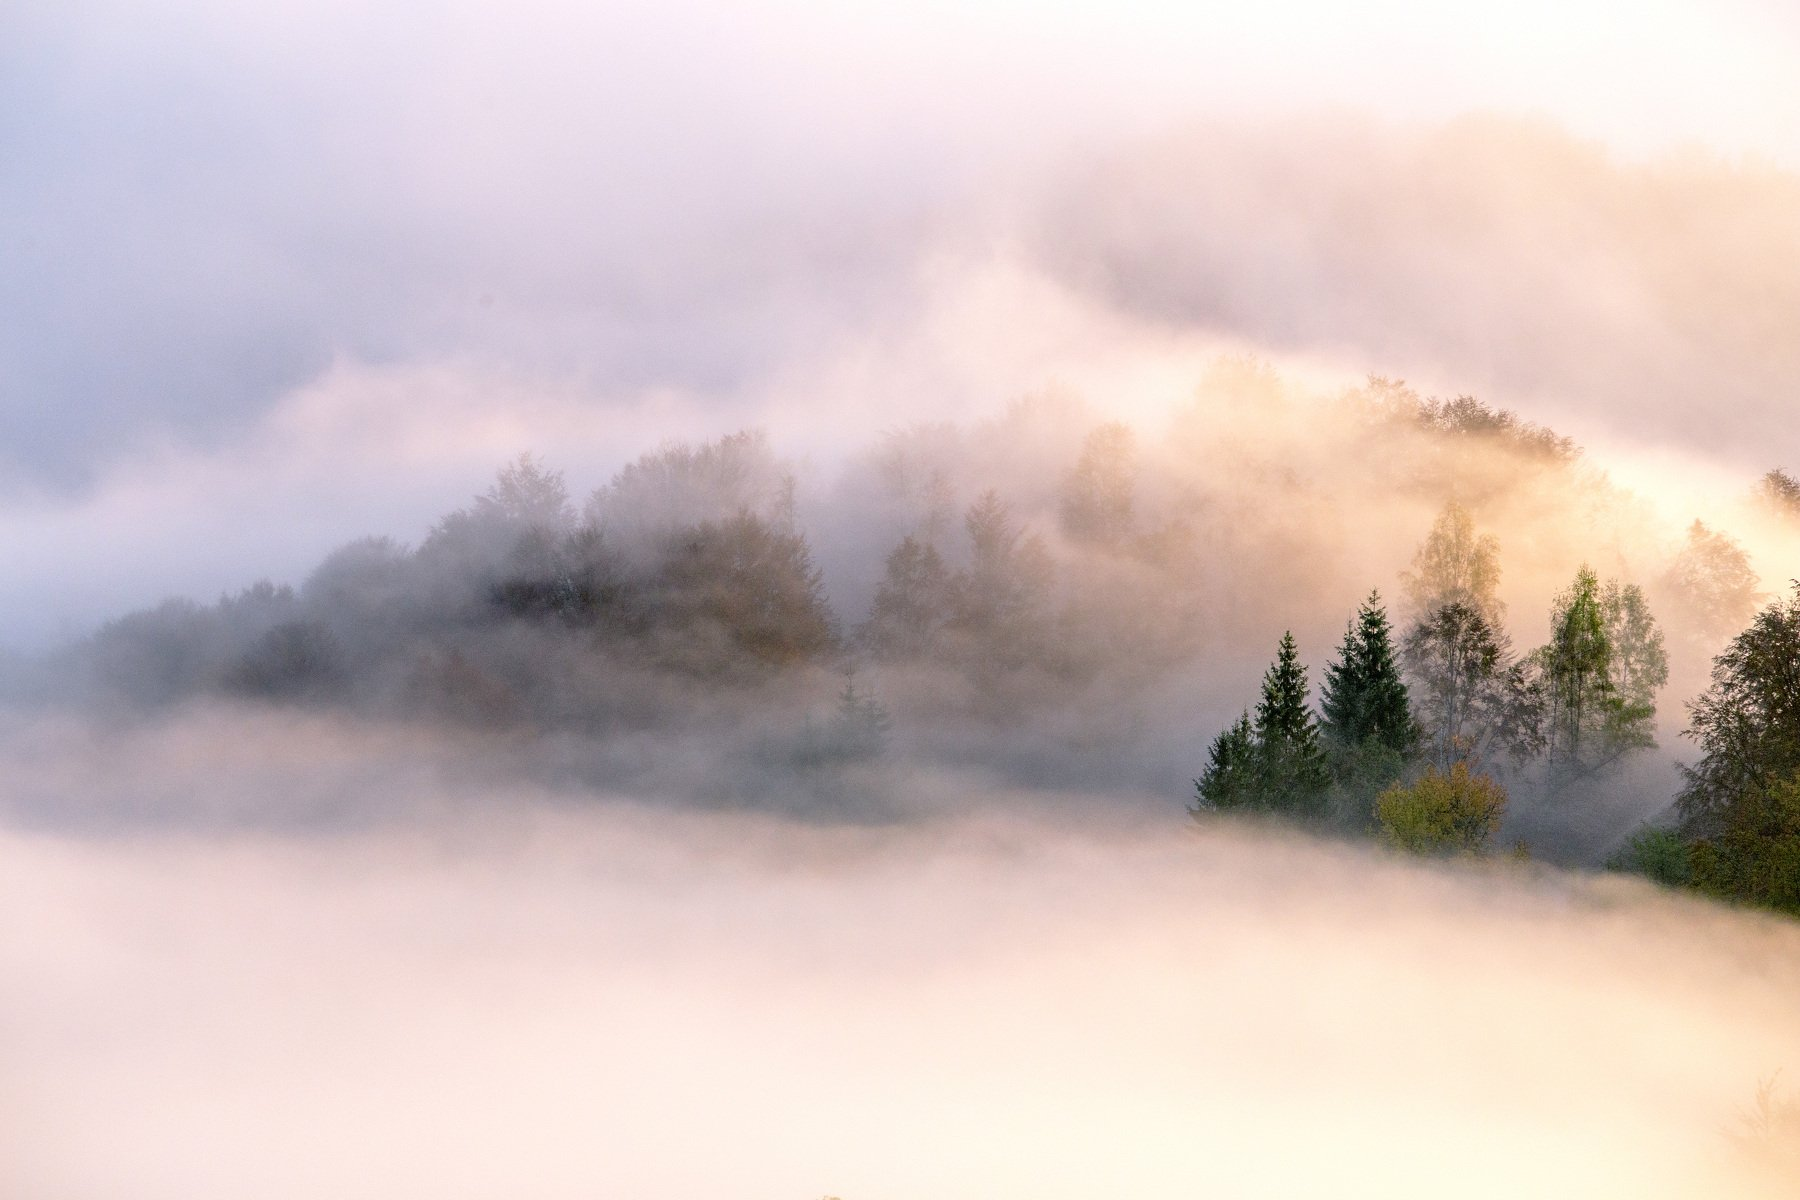 fog,mist,trees,morning,sunrise, Marius Turc